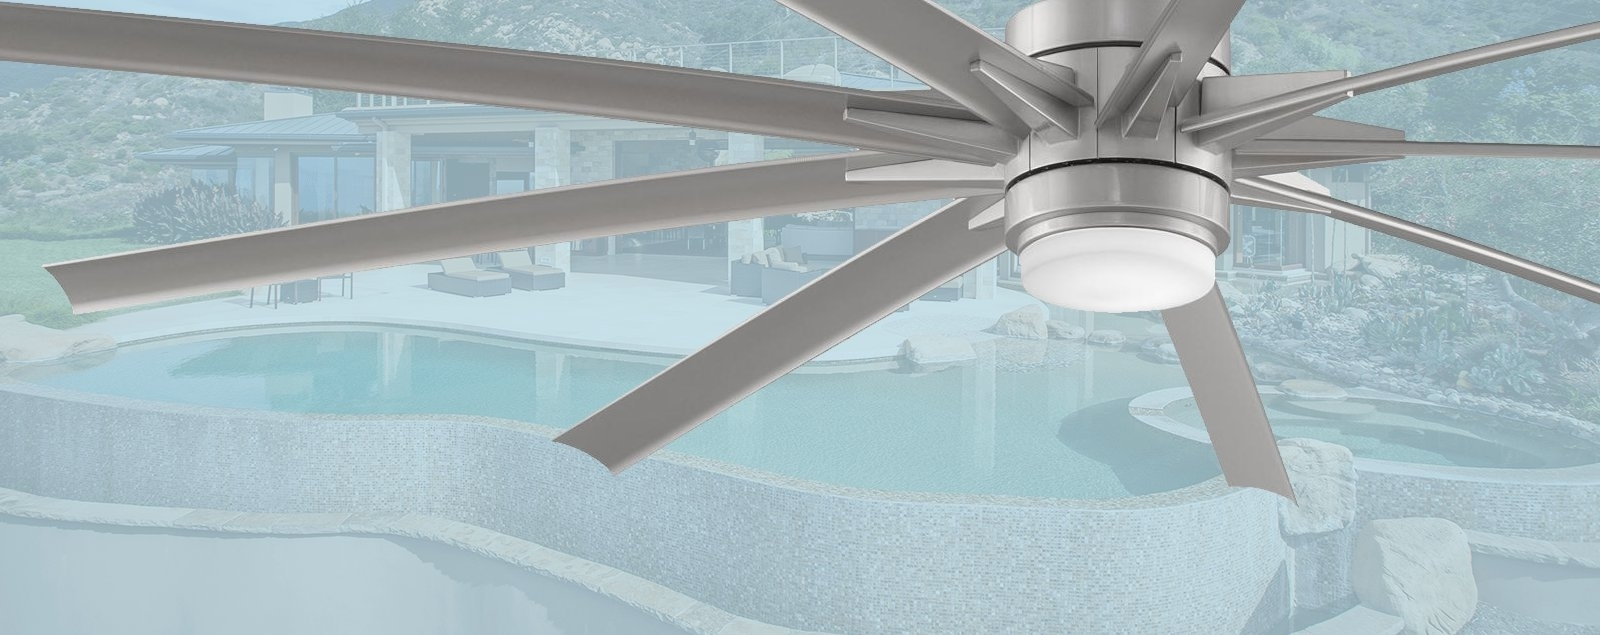 "Famous Large Outdoor Ceiling Fans With Lights Throughout Large Outdoor Ceiling Fans – Outdoor Fans Over 60"" In Diameter (View 15 of 20)"